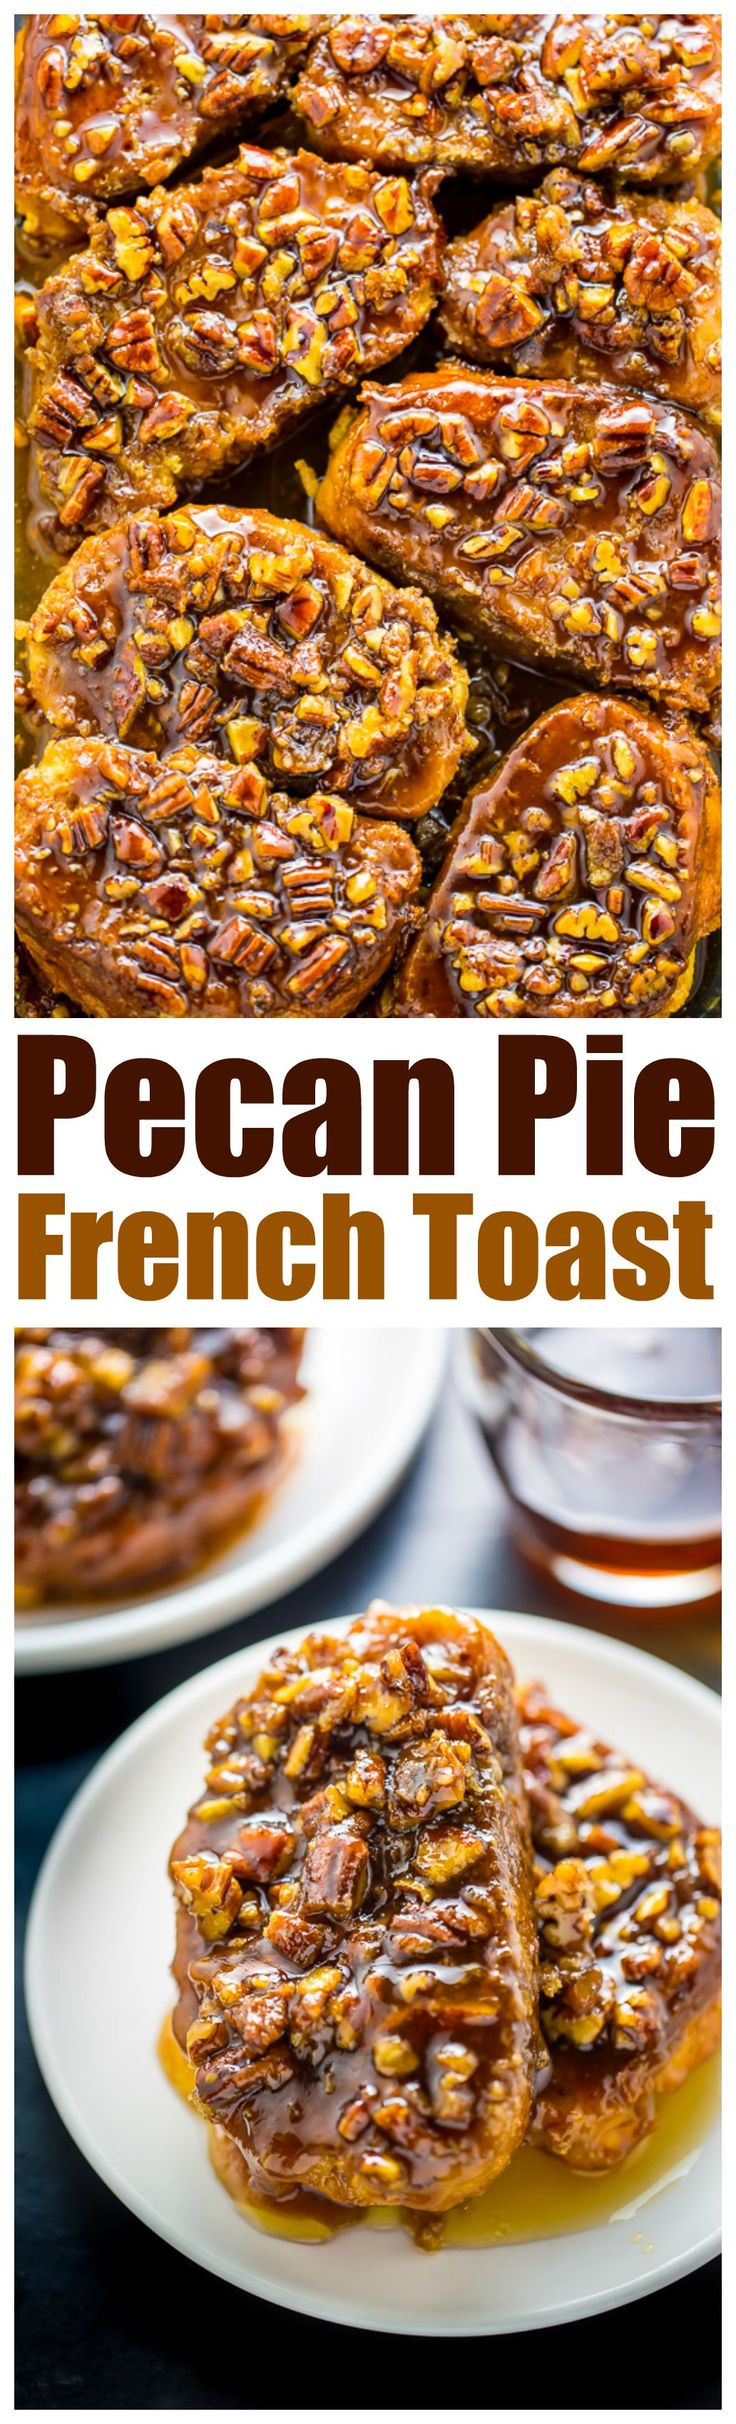 Incredibly EASY Overnight Pecan Pie French Toast! Perfect for holiday brunch. Get the recipe on BakerbyNature.com